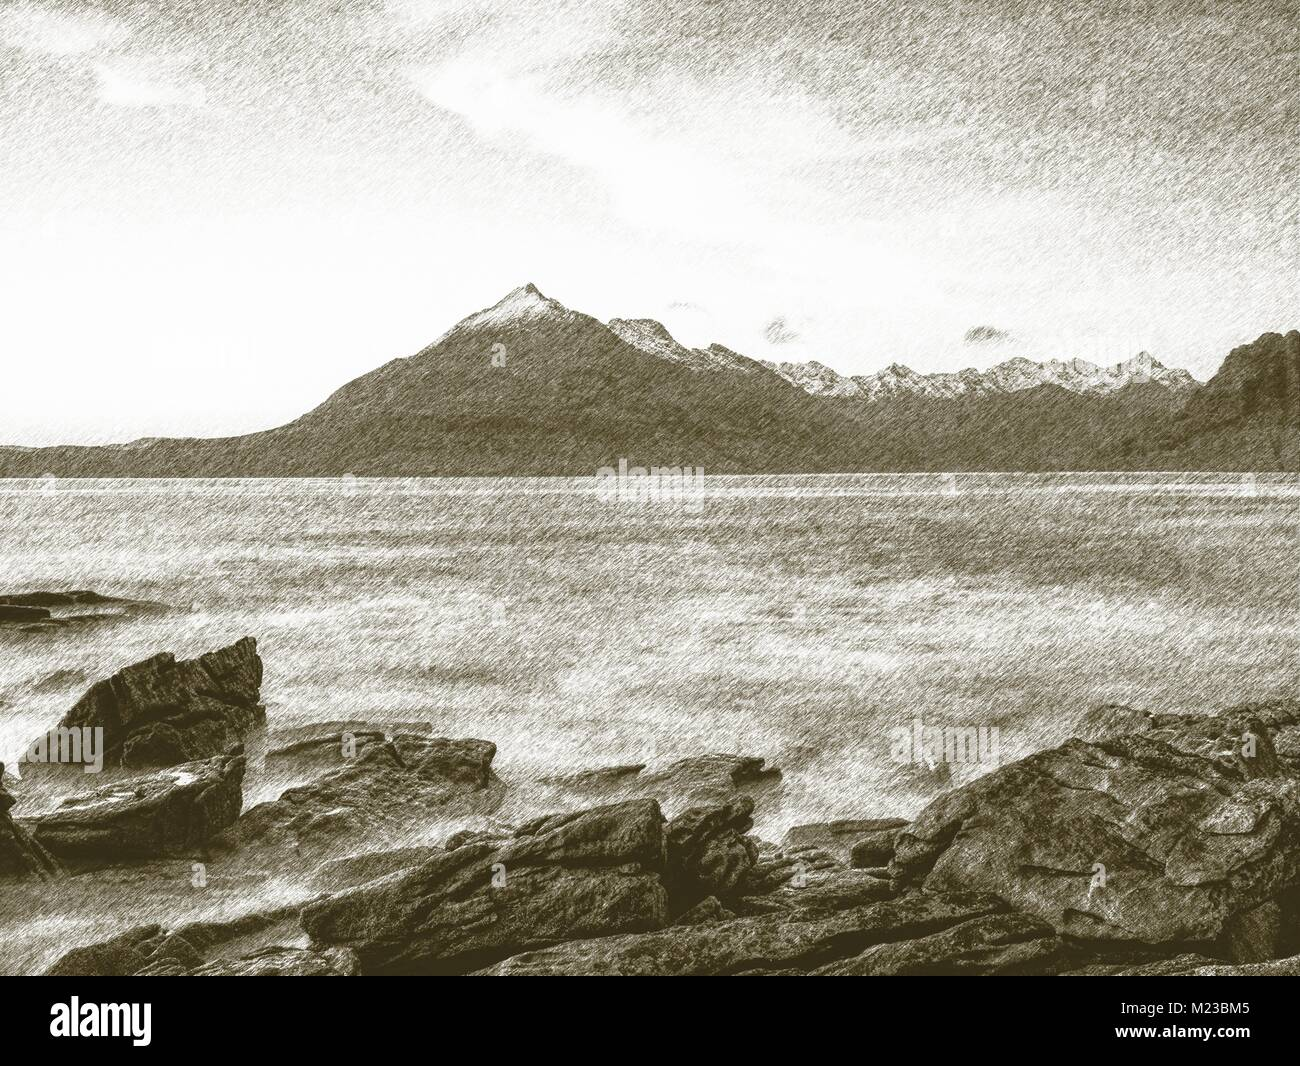 Copy of old lithographic technique.  Low angle  overlooking of offshore rocks and smooth sea, mountains at horizon - Stock Image